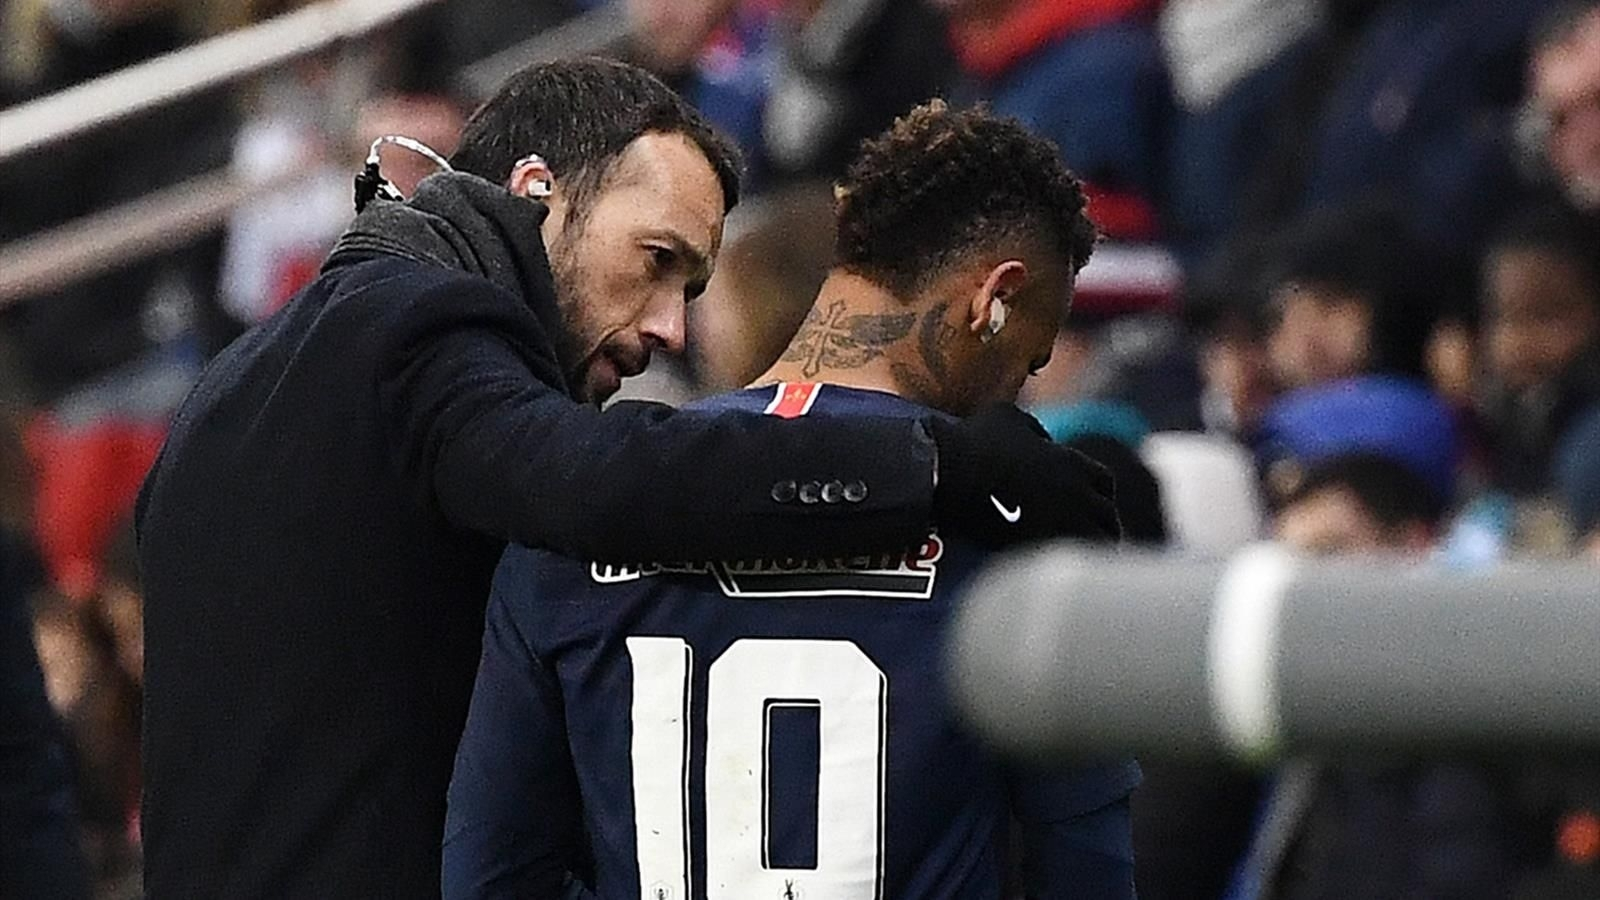 Uefa Reject Psg's Appeal To Overturn Neymar's Champions League Ban intended for Psg Calendar 2019-2020